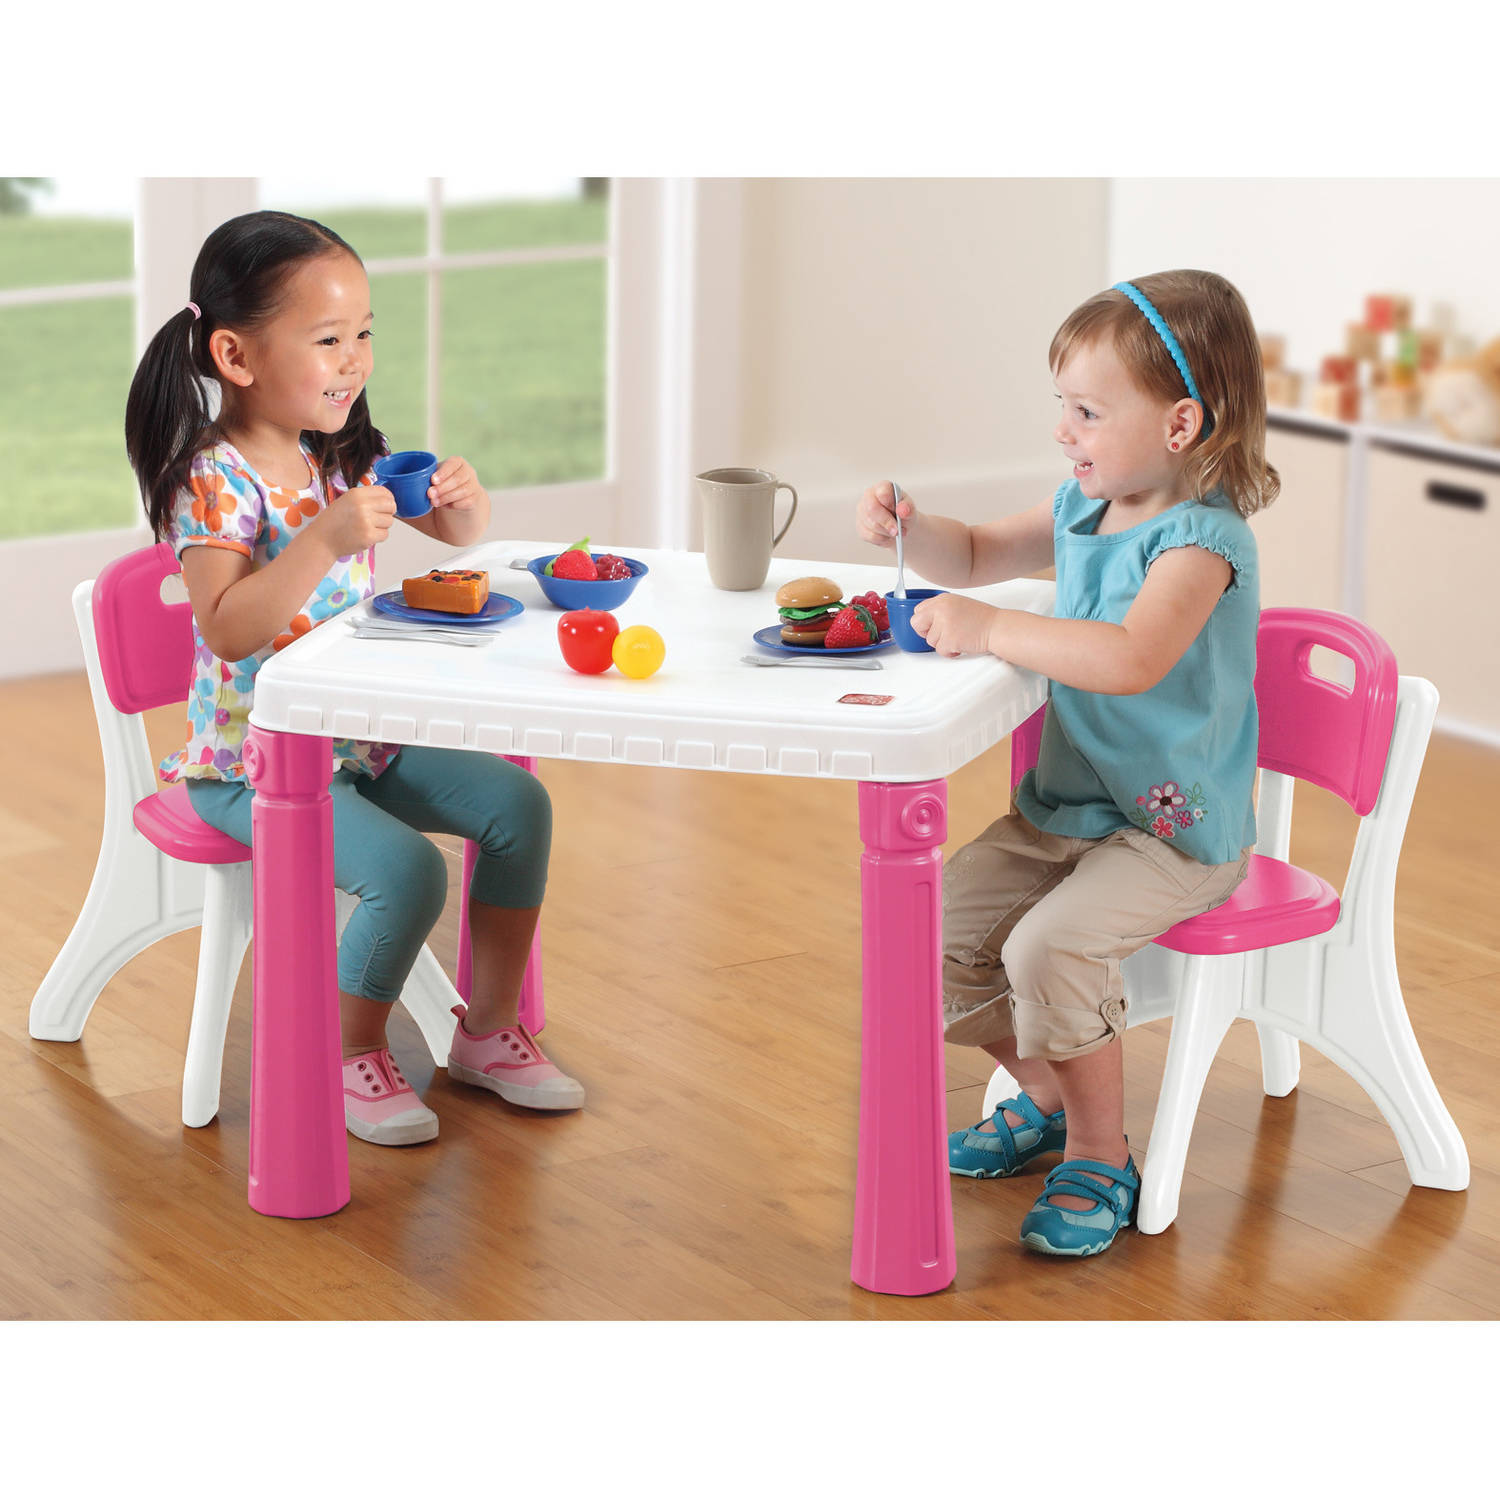 Step2 LifeStyle Kids Table and 2 Chairs Set Multiple Colors - Walmart.com  sc 1 st  Walmart : kids dining table and chair set - pezcame.com